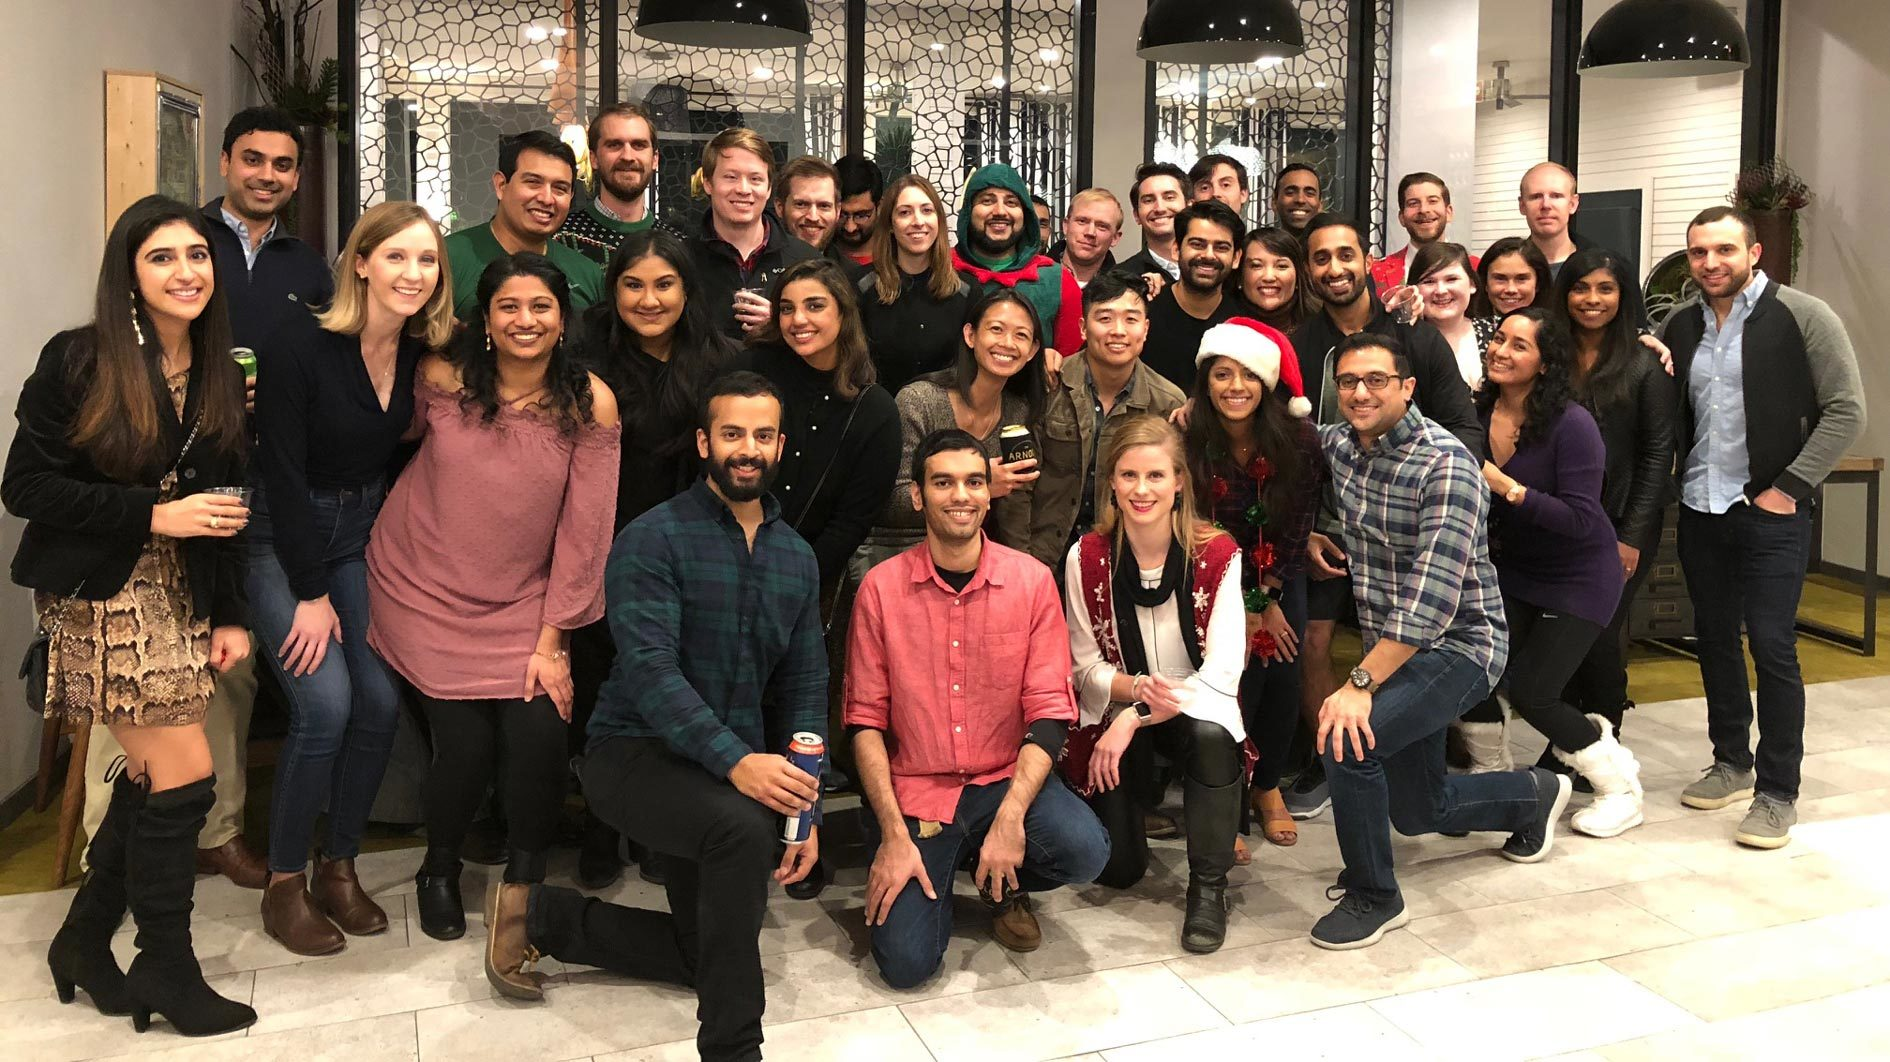 Internal Medicine residents in a group at a holiday party.